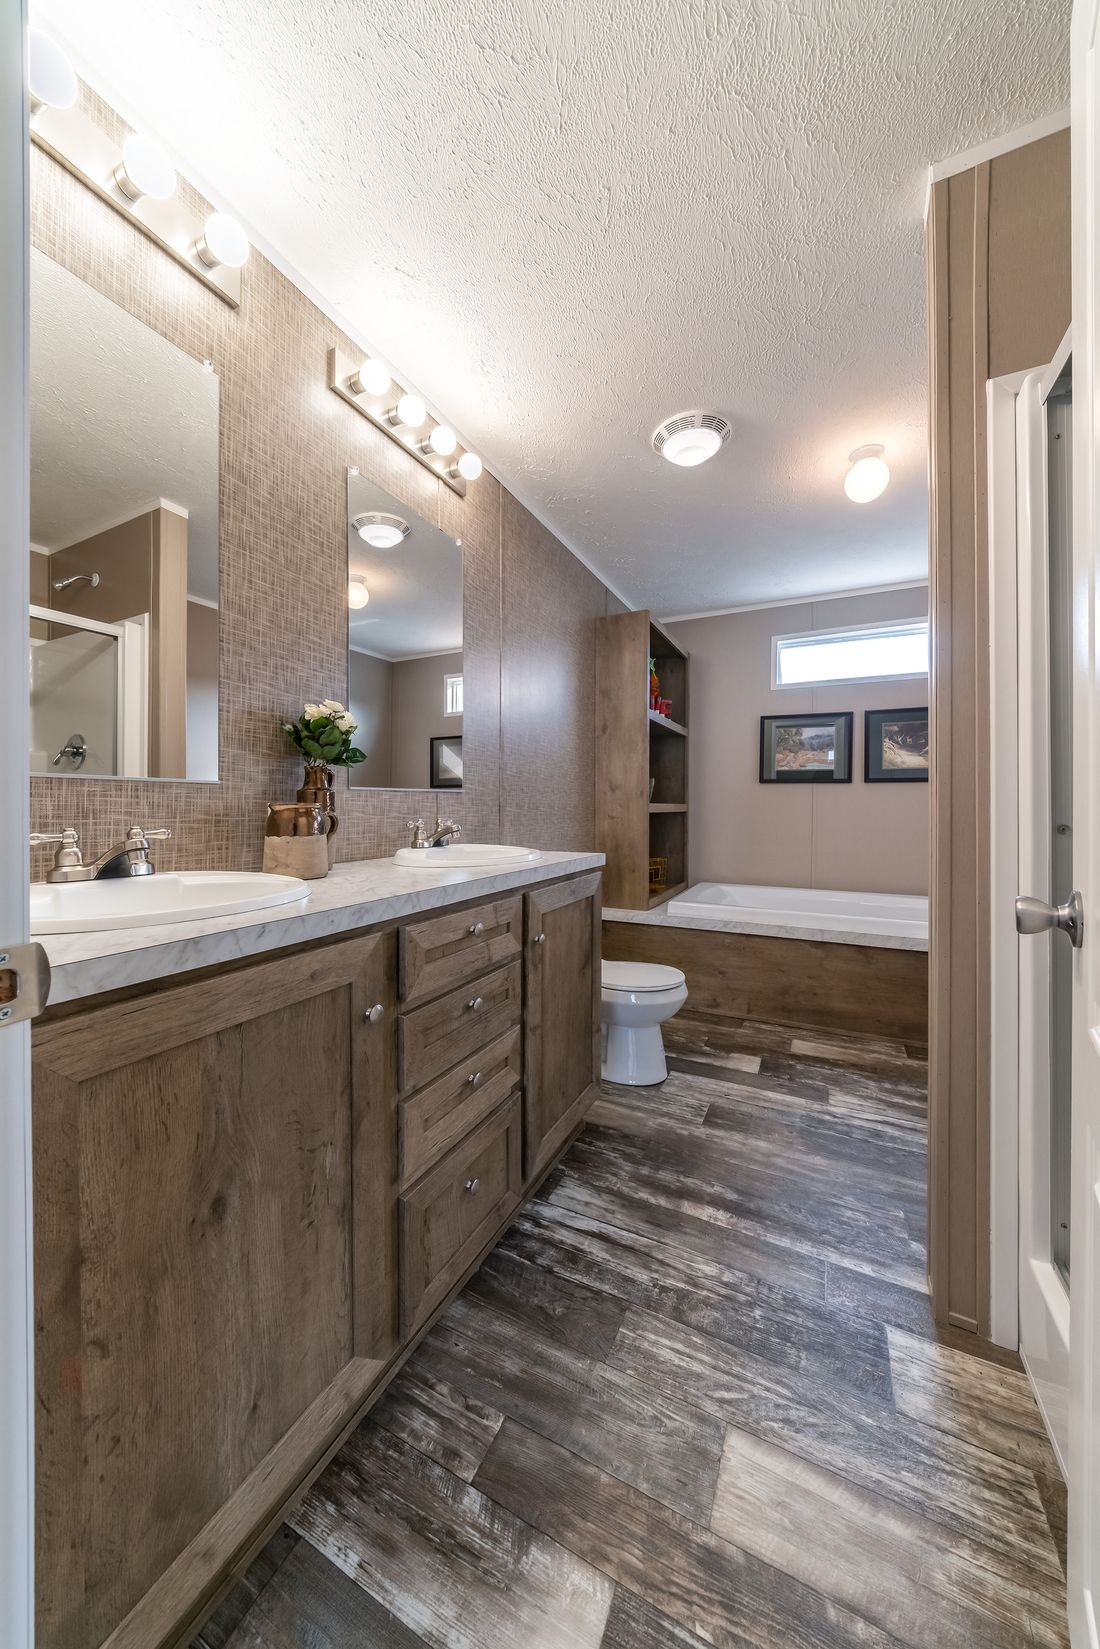 The ULTRA PRO 56B Master Bathroom. This Manufactured Mobile Home features 3 bedrooms and 2 baths.